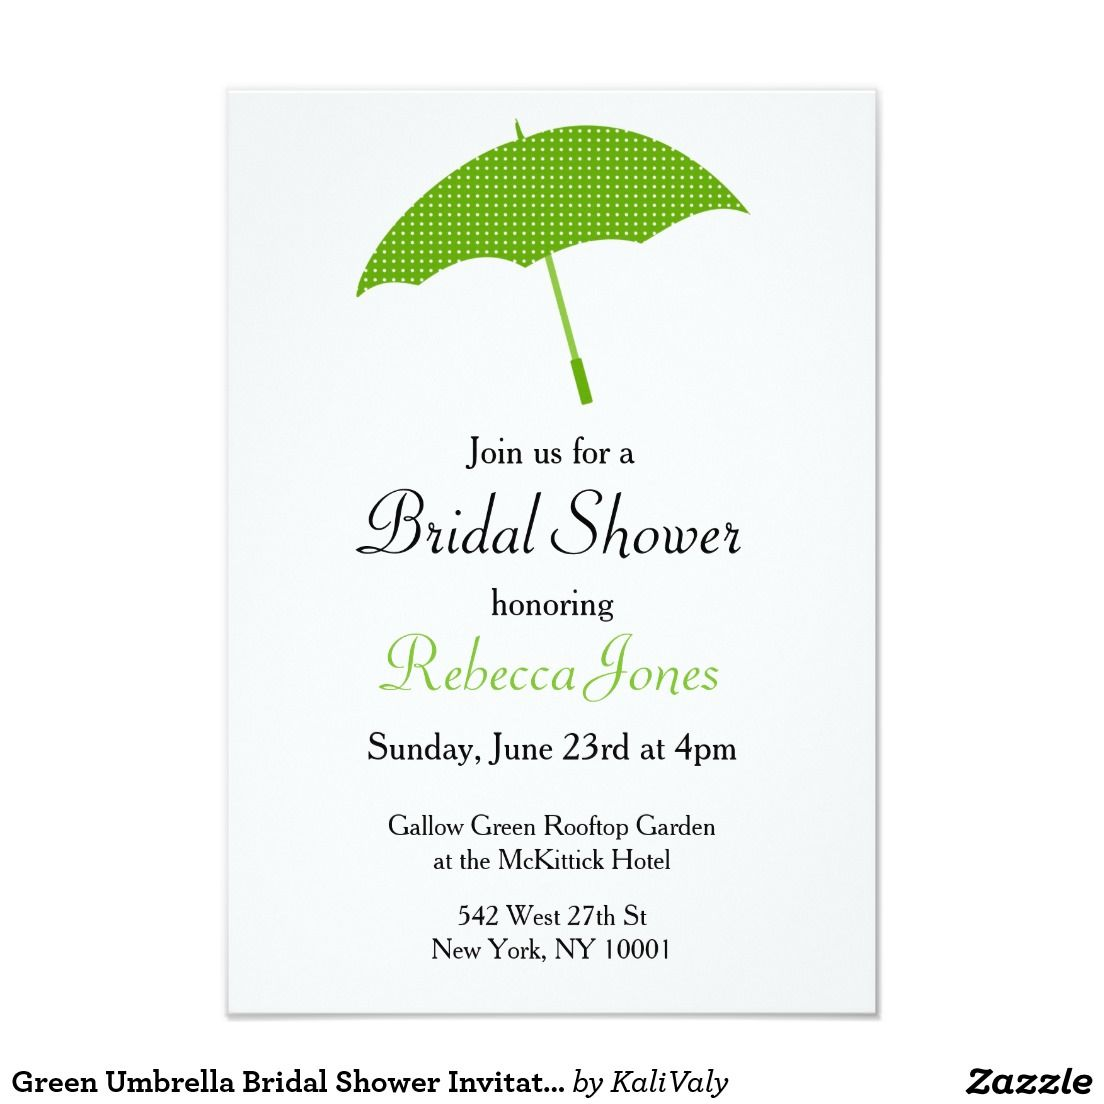 Green Umbrella Bridal Shower Invitation Bridal Shower Pinterest